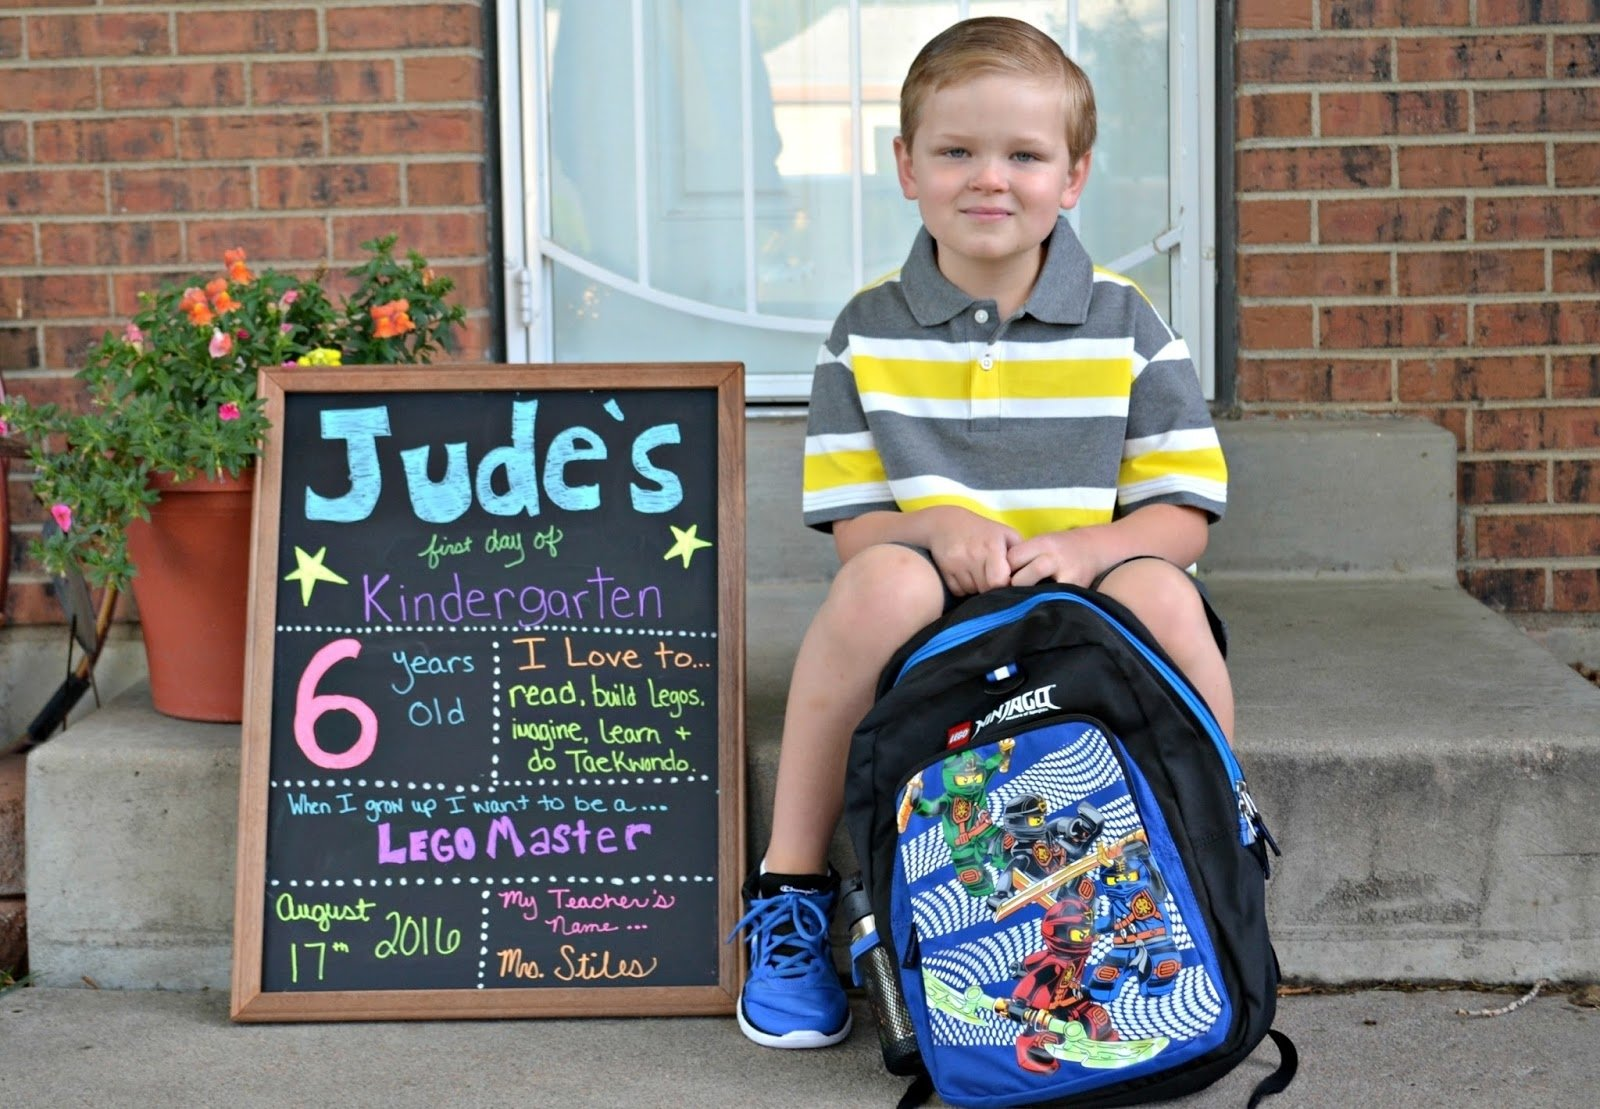 10 Spectacular First Day Of Kindergarten Picture Ideas unique kindergarten first day of school picture ideas collections 4